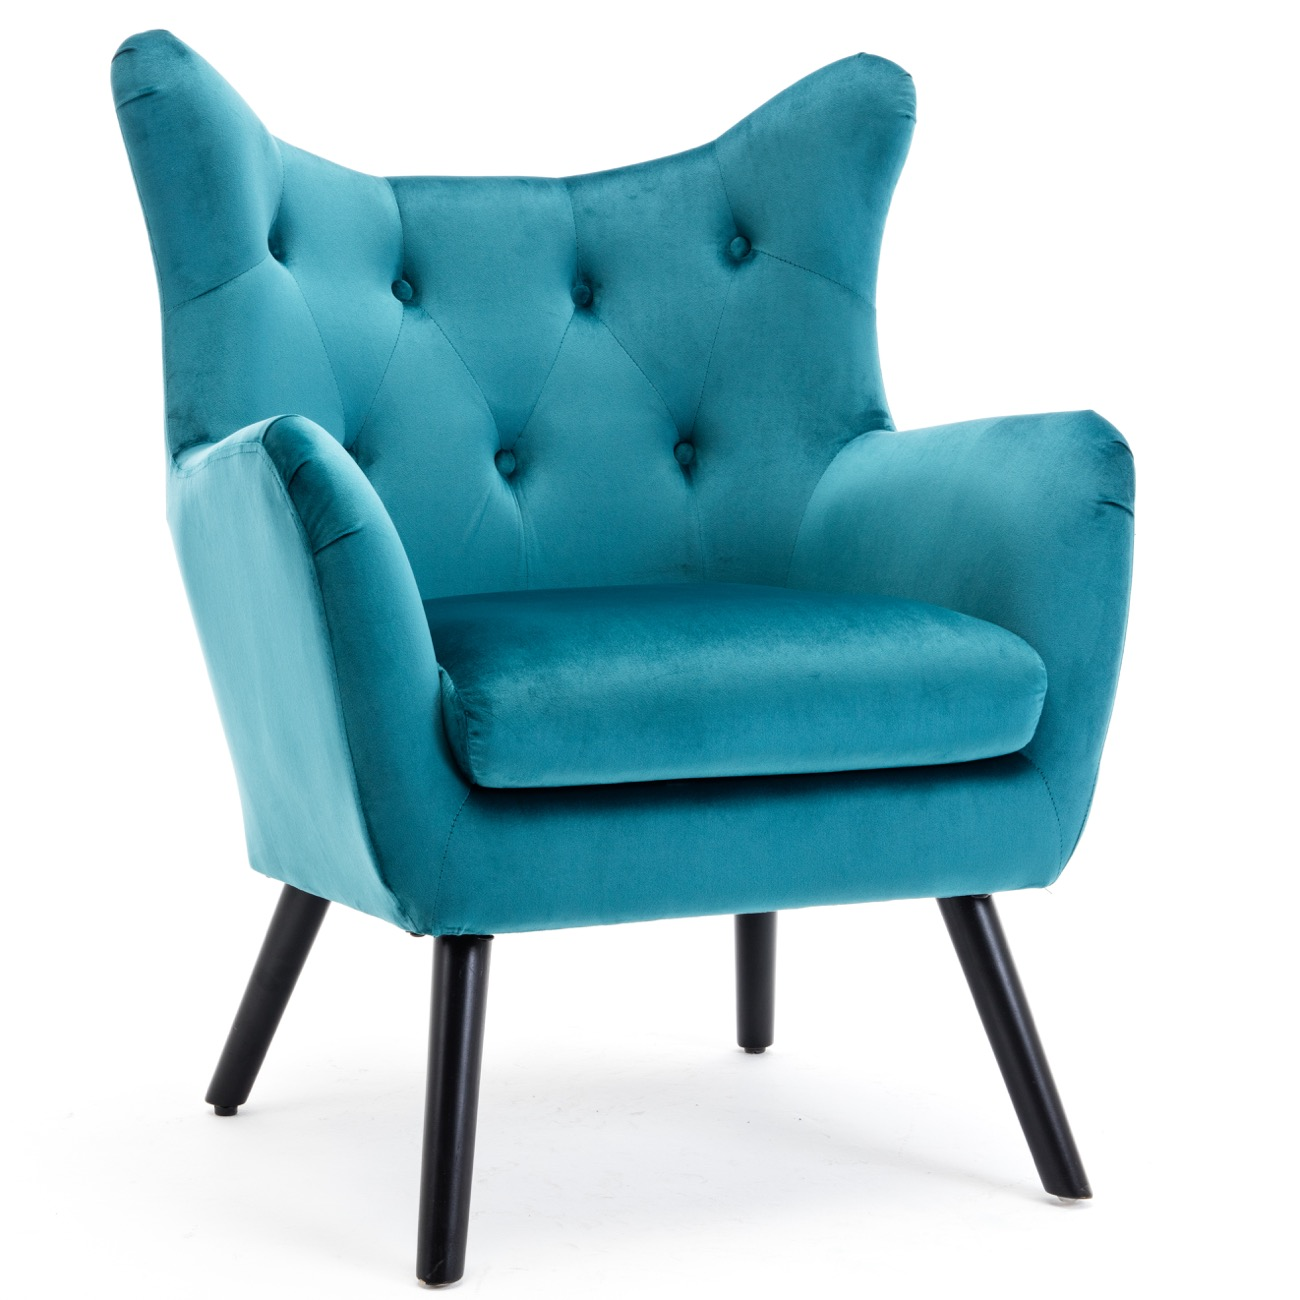 Details About Accent Chair Upholstered Seat Dining Arm Wing Back Living Room Furniture Teal